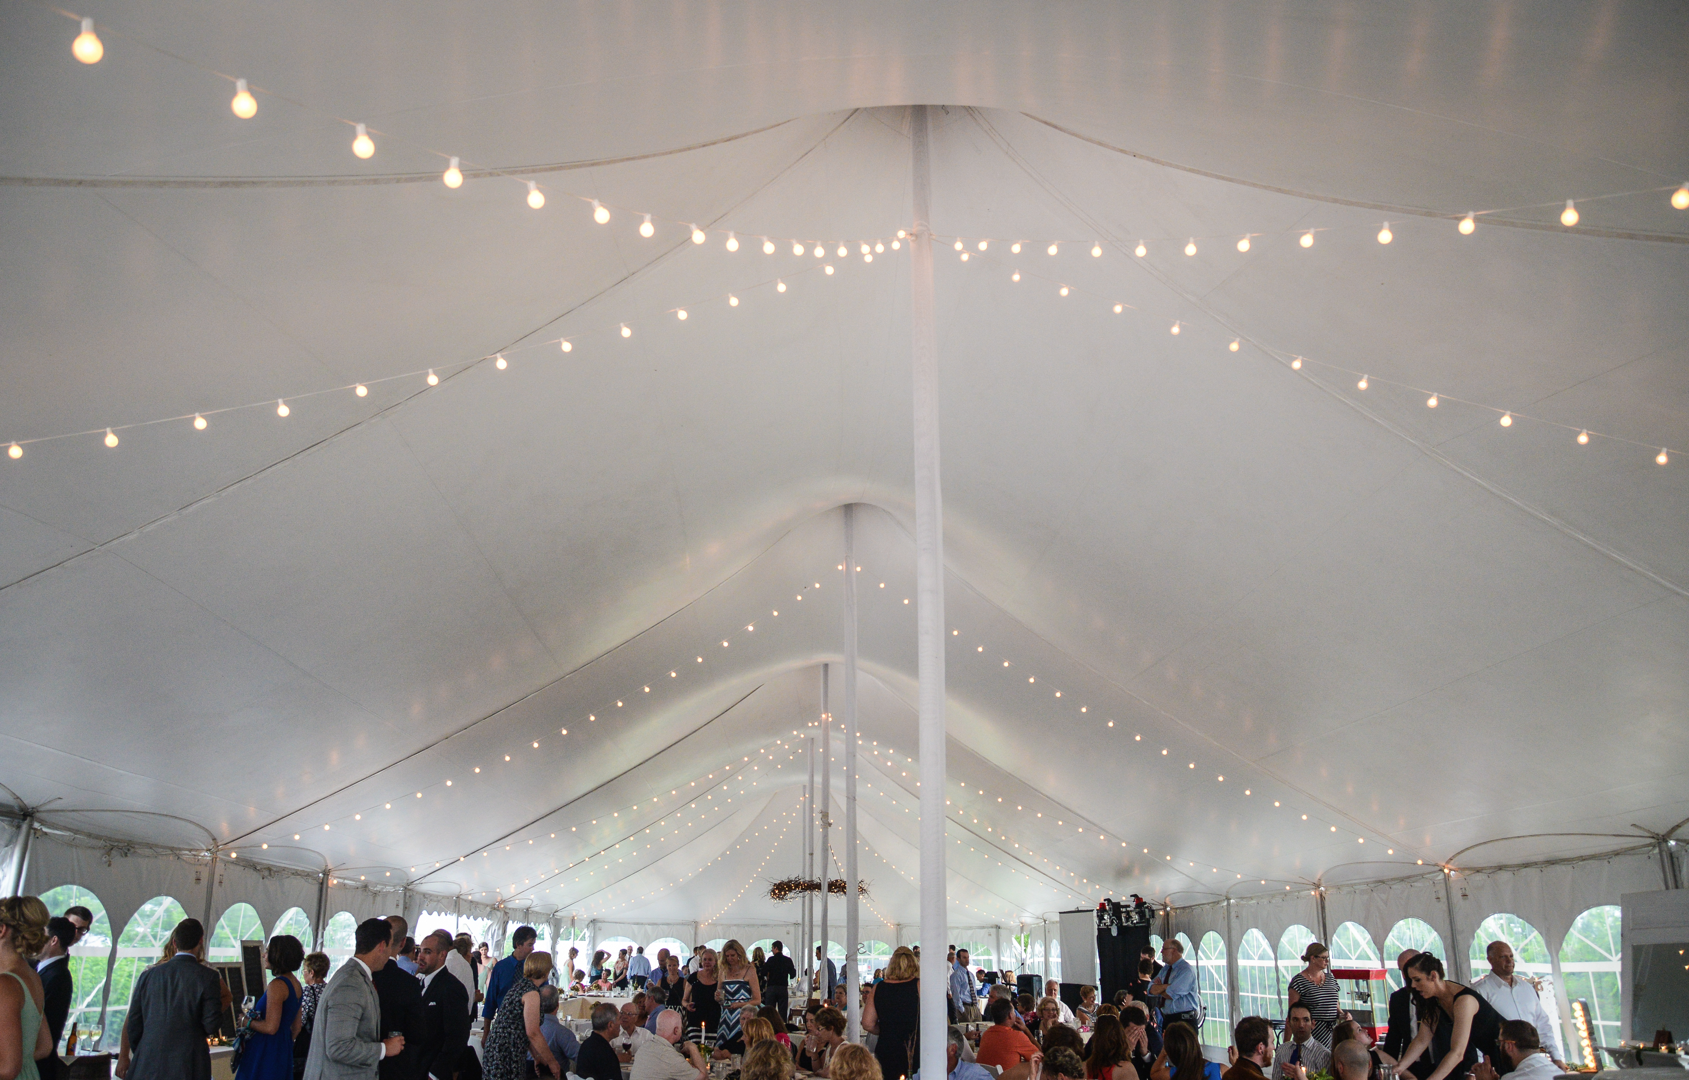 The big tent looks magically wonderful as your wedding reception begins! Photography by The Photosapien & The big tent looks magically wonderful as your wedding reception ...